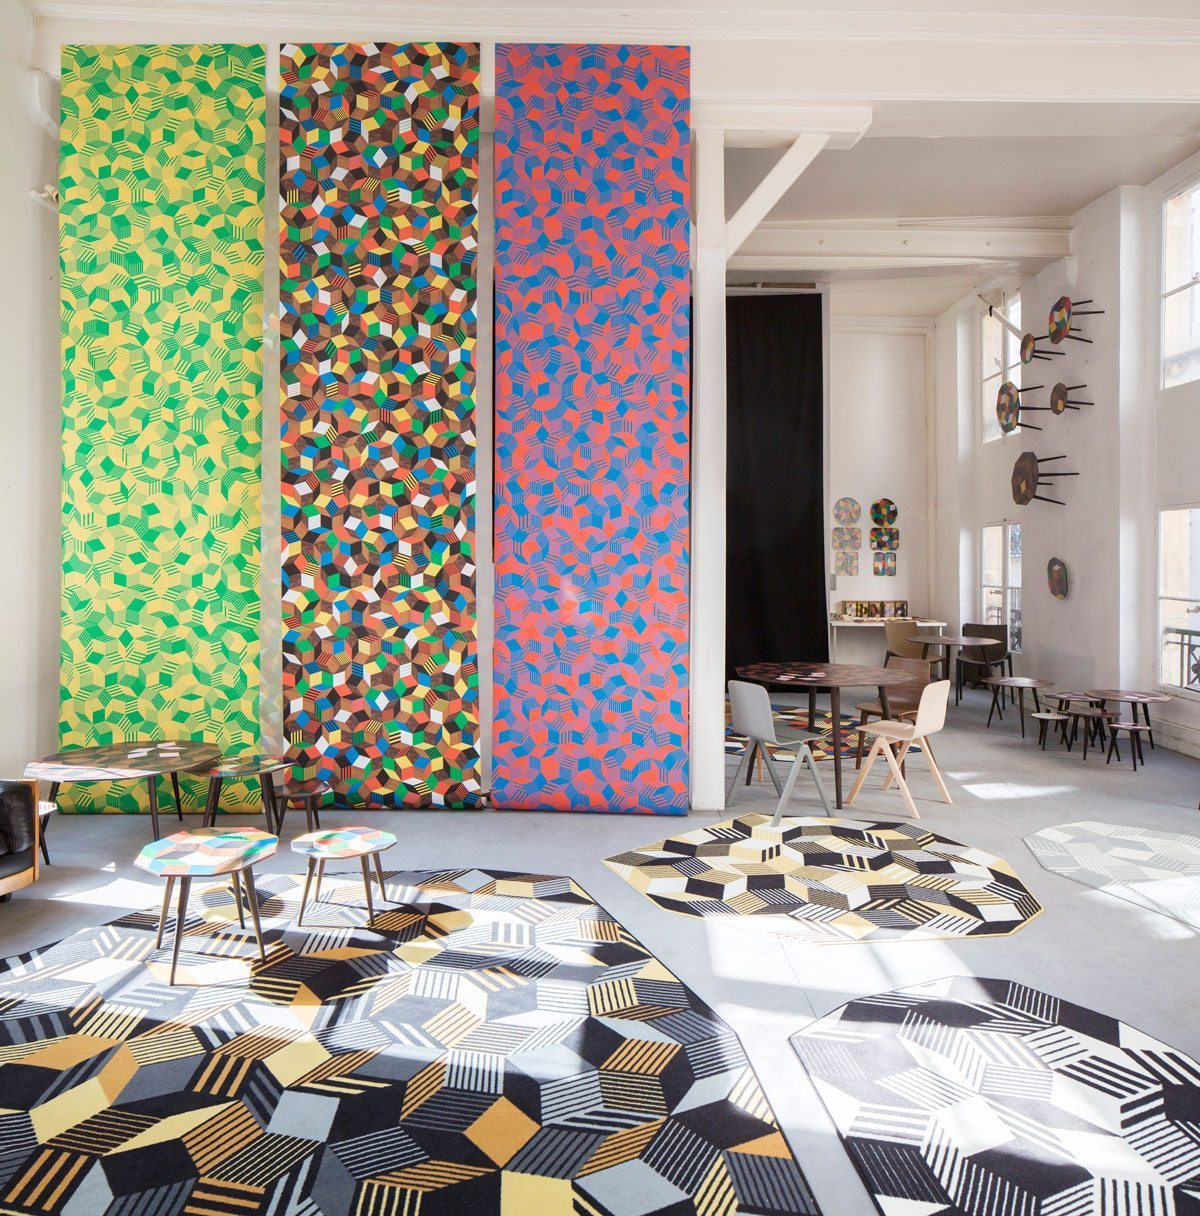 Exposition Penrose Project, Ich&Kar - Bazartherapy, Paris Design Week 2015, installation monumental de papiers peints aux motifs géométriques et tapis graphique aux contours irréguliers, restaurant Le Derrière